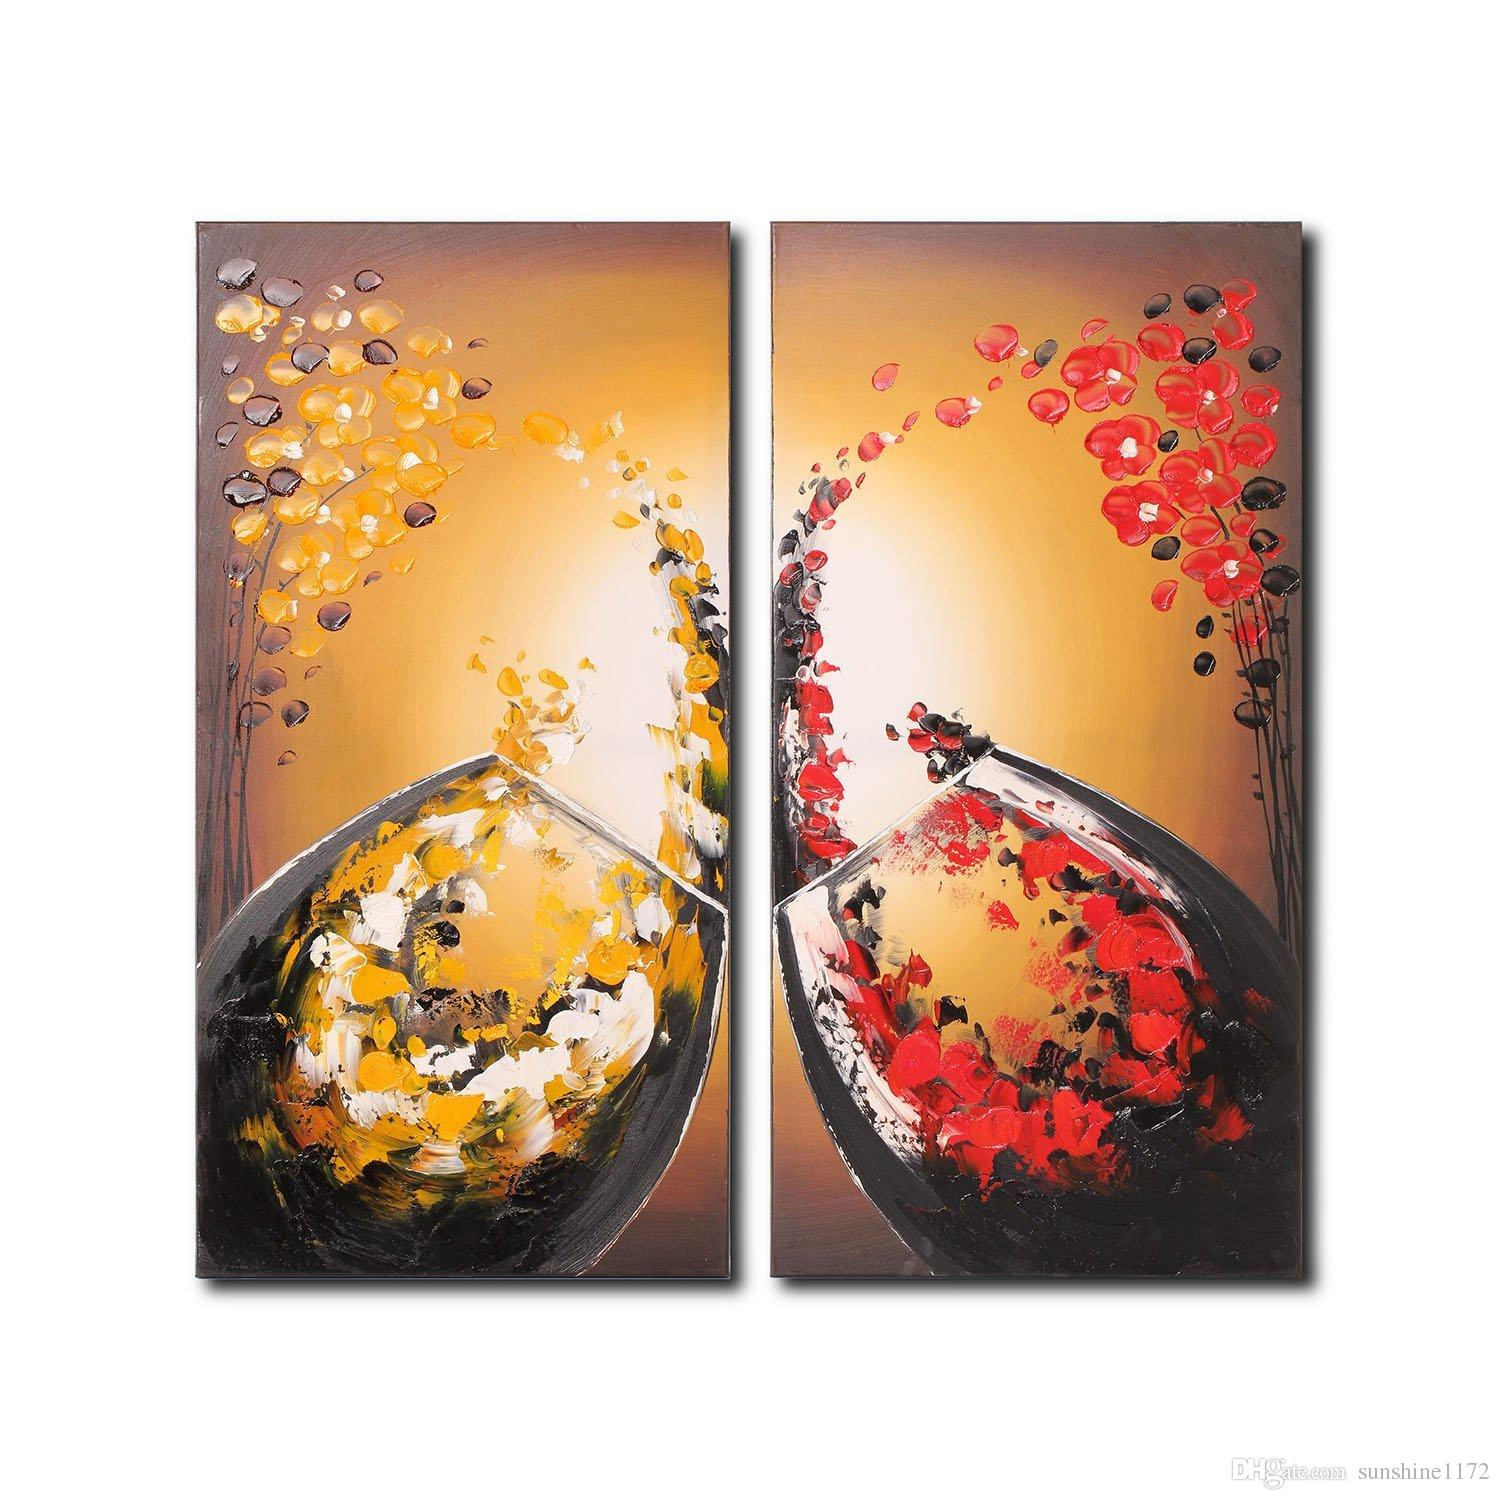 2018 flower oil painting wine glass canvas painting 2 panel modern 2018 flower oil painting wine glass canvas painting 2 panel modern art wall decoration wood frame inside ready to hang from sunshine1172 4289 dhgate amipublicfo Images